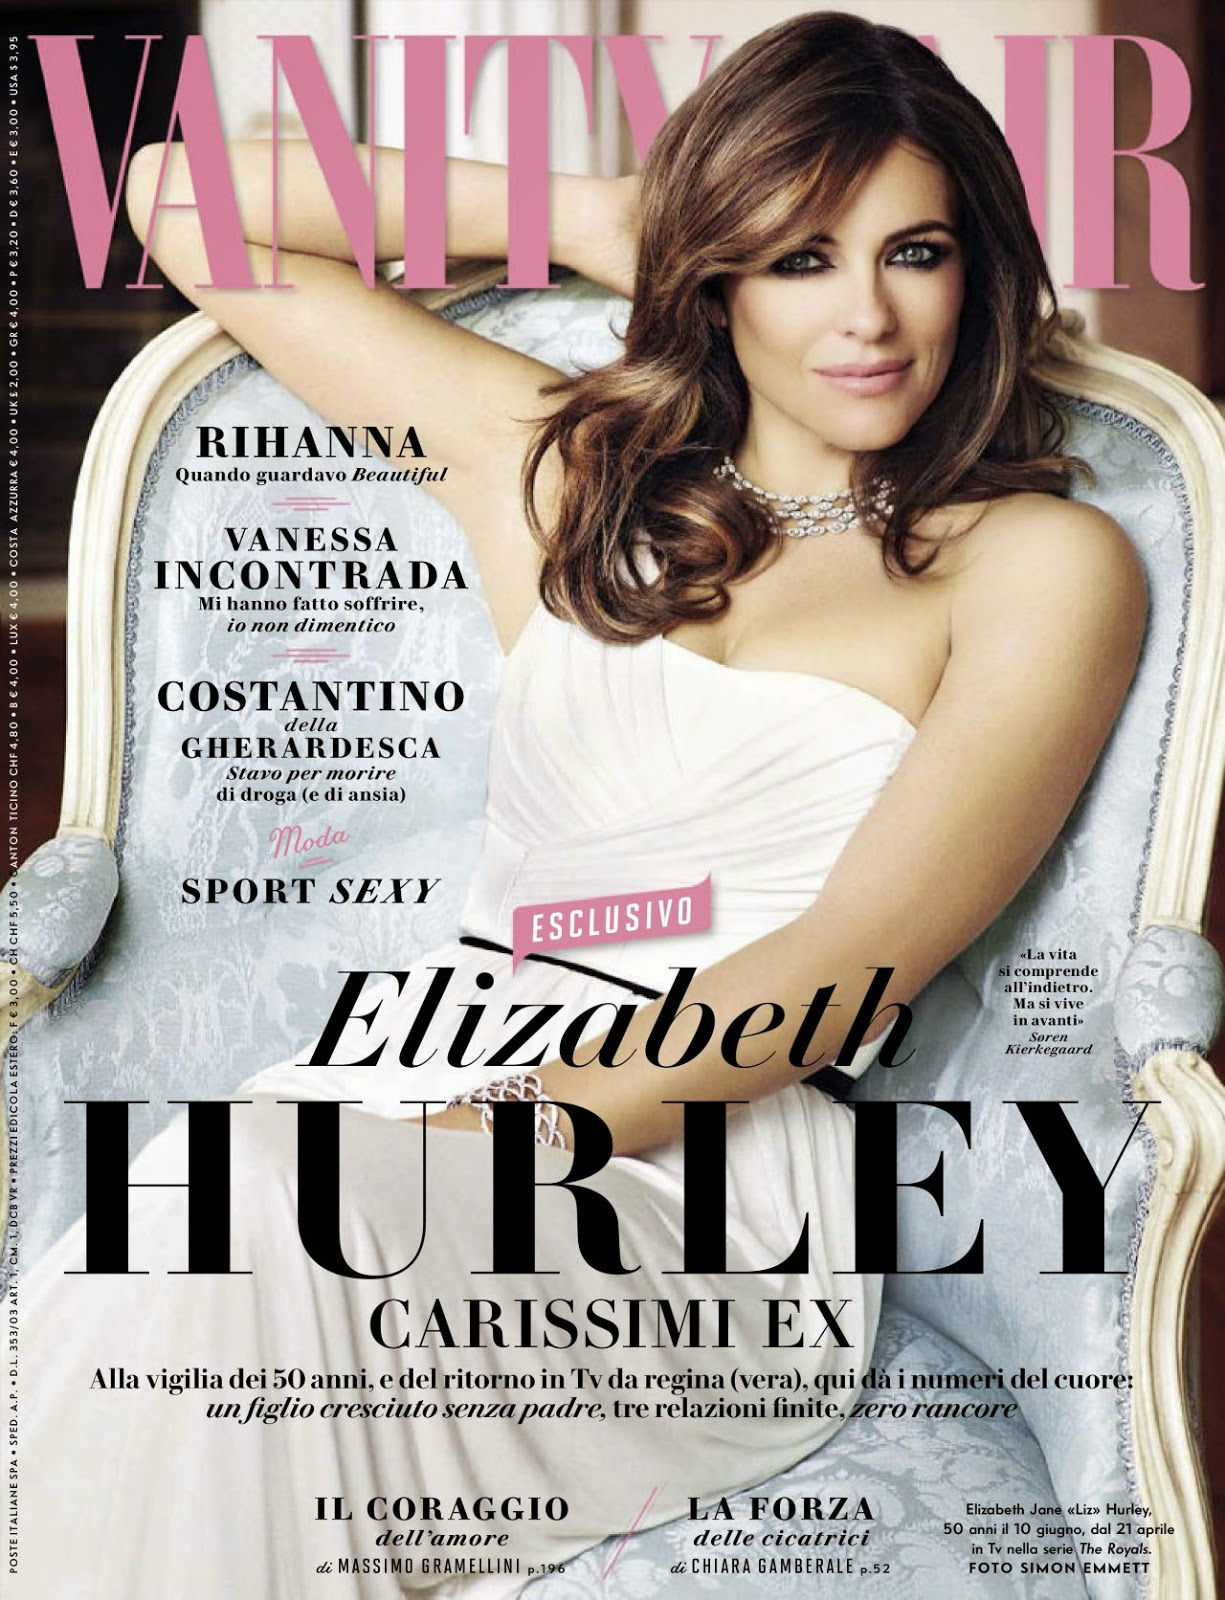 Actress @ Elizabeth Hurley - Vanity Fair Italy April 2015